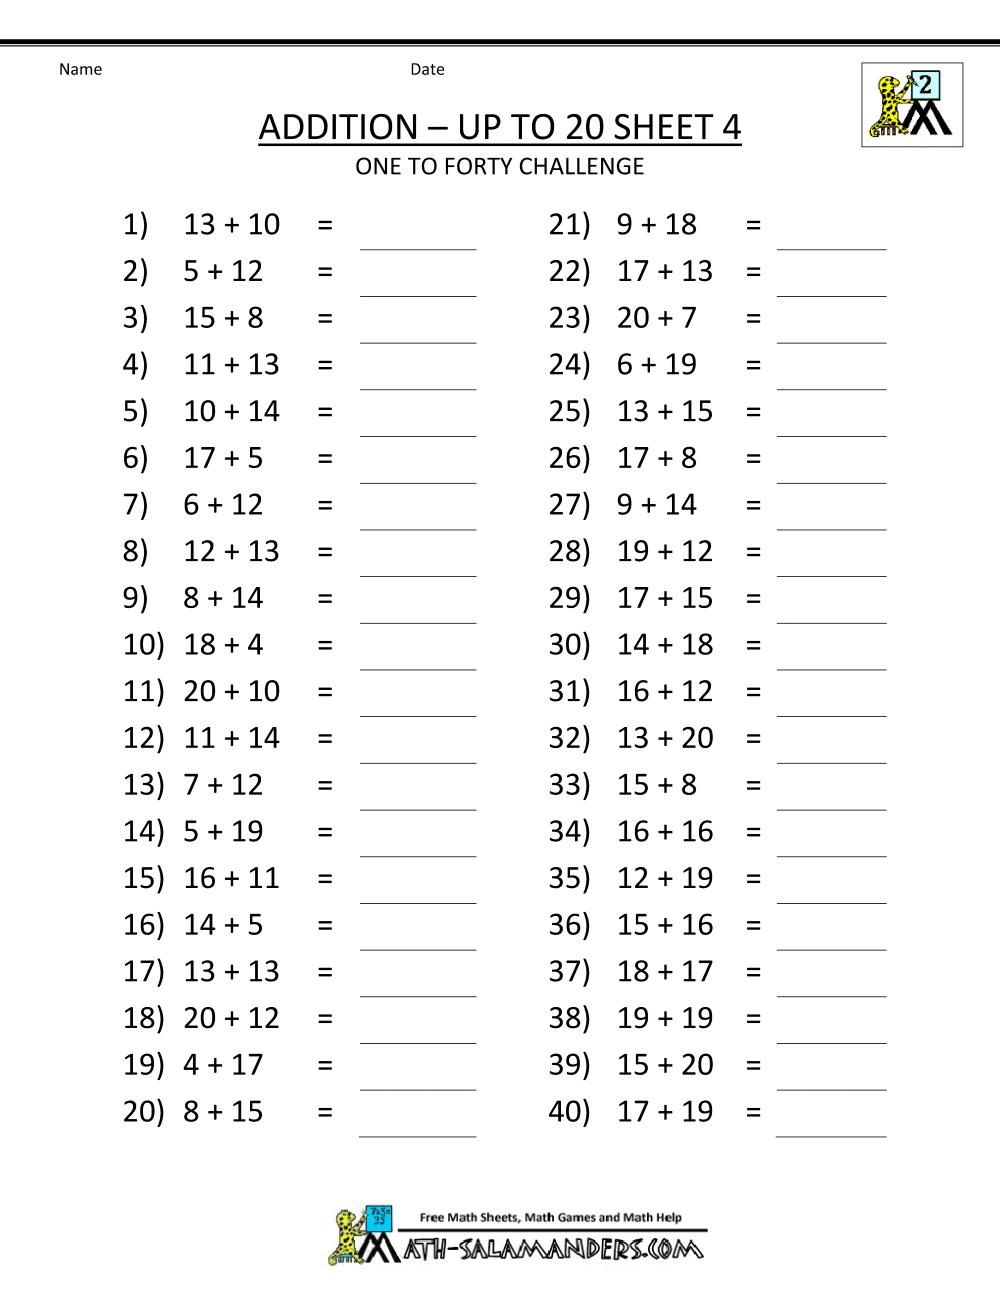 Download And Print Turtle Diary S Adding Two Numbers Up To Two Digits Worksheet Our Large Col Mathematics Worksheets 2nd Grade Math Worksheets Math Worksheets